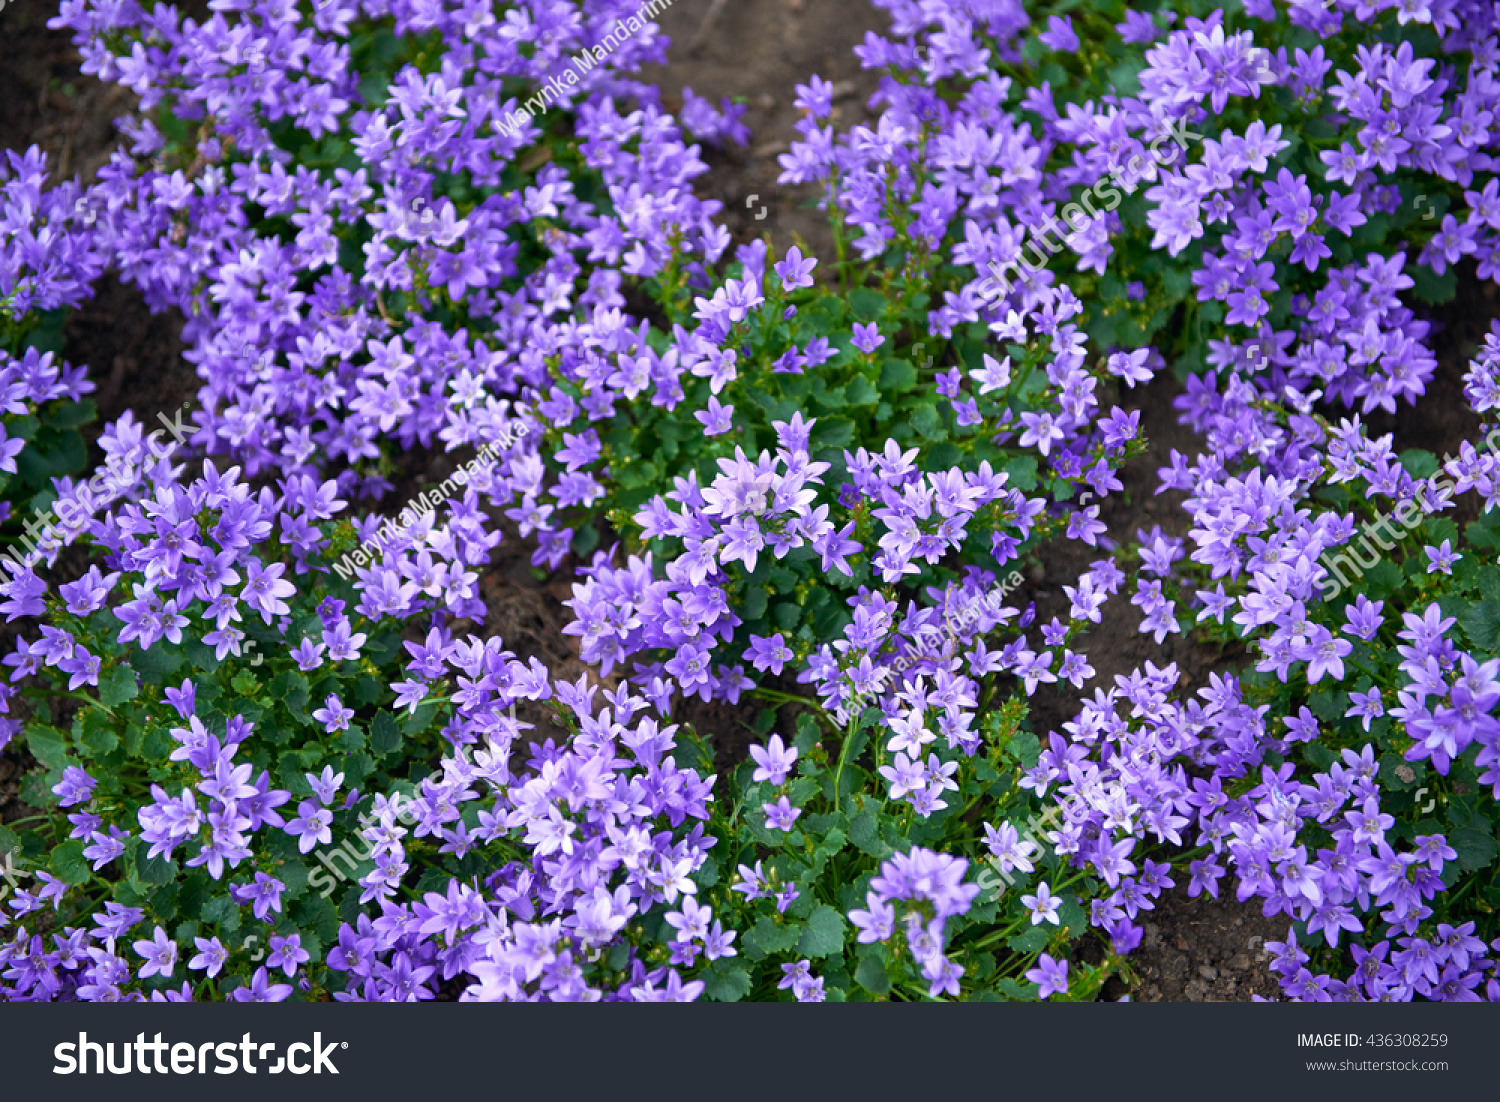 Flowers Lilac Bells Nature Background Flowers Background With